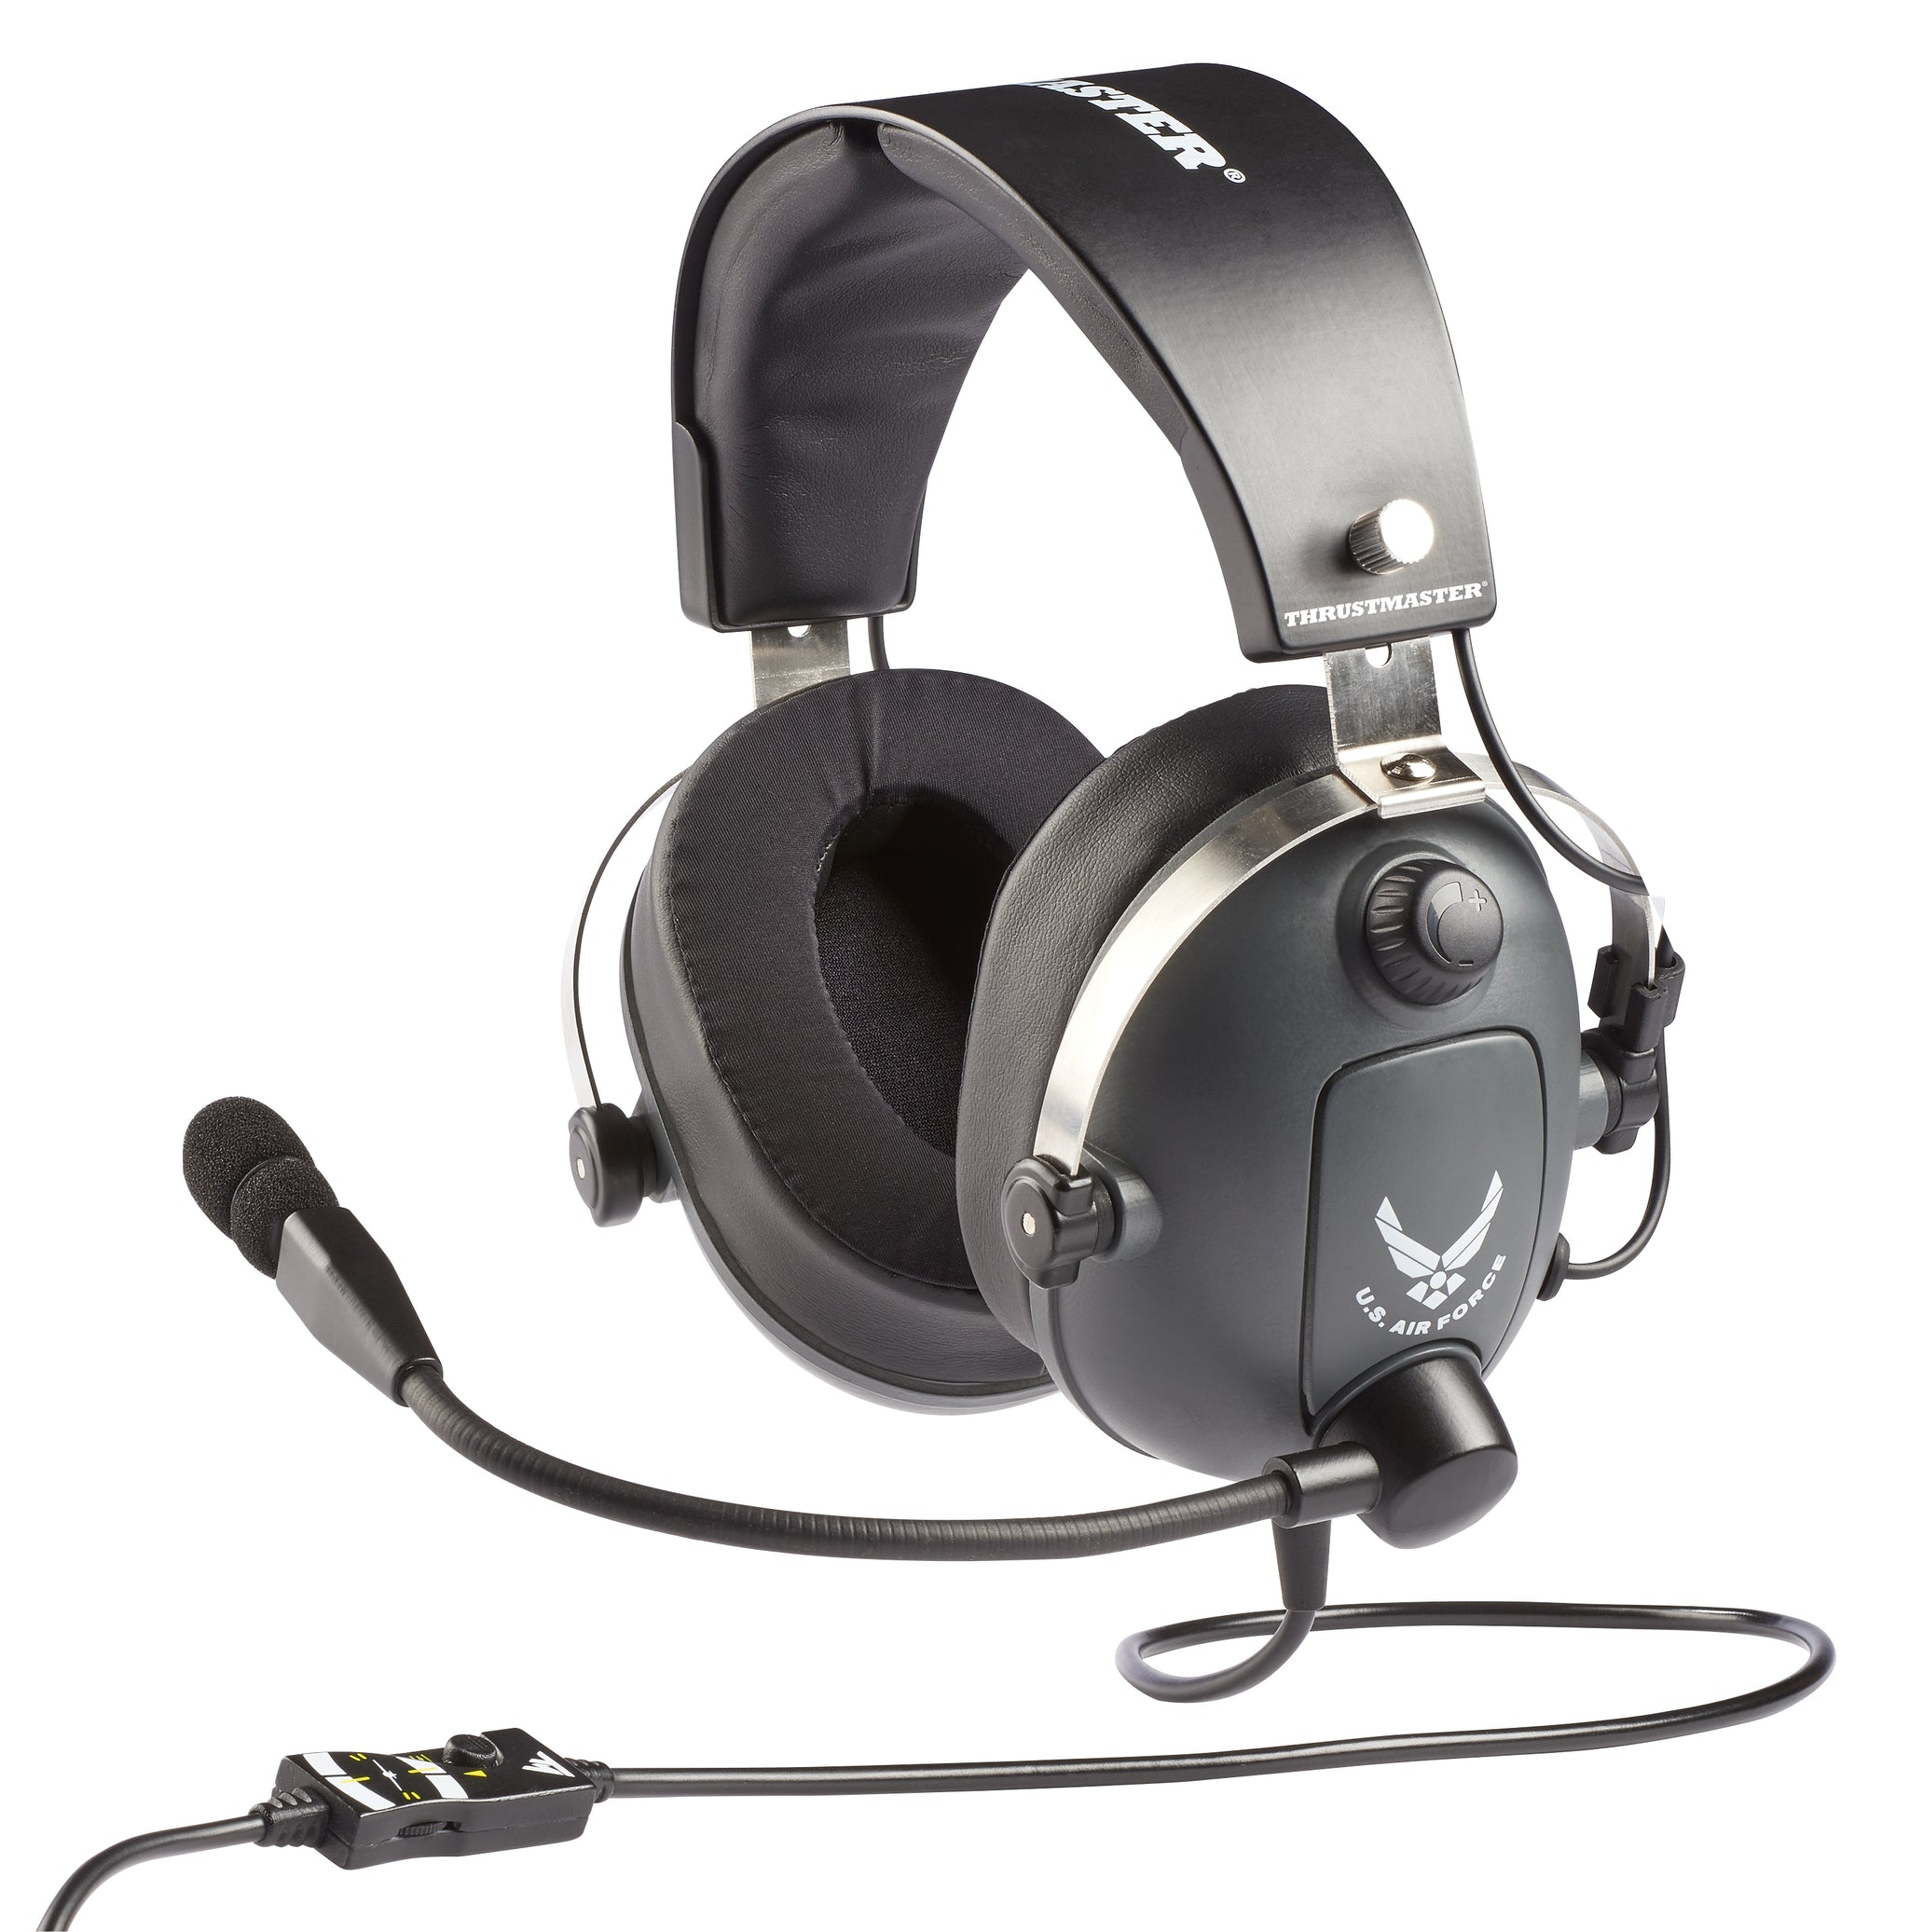 Thrustmaster - T Flight U S  Air Force Edition Gaming Headset